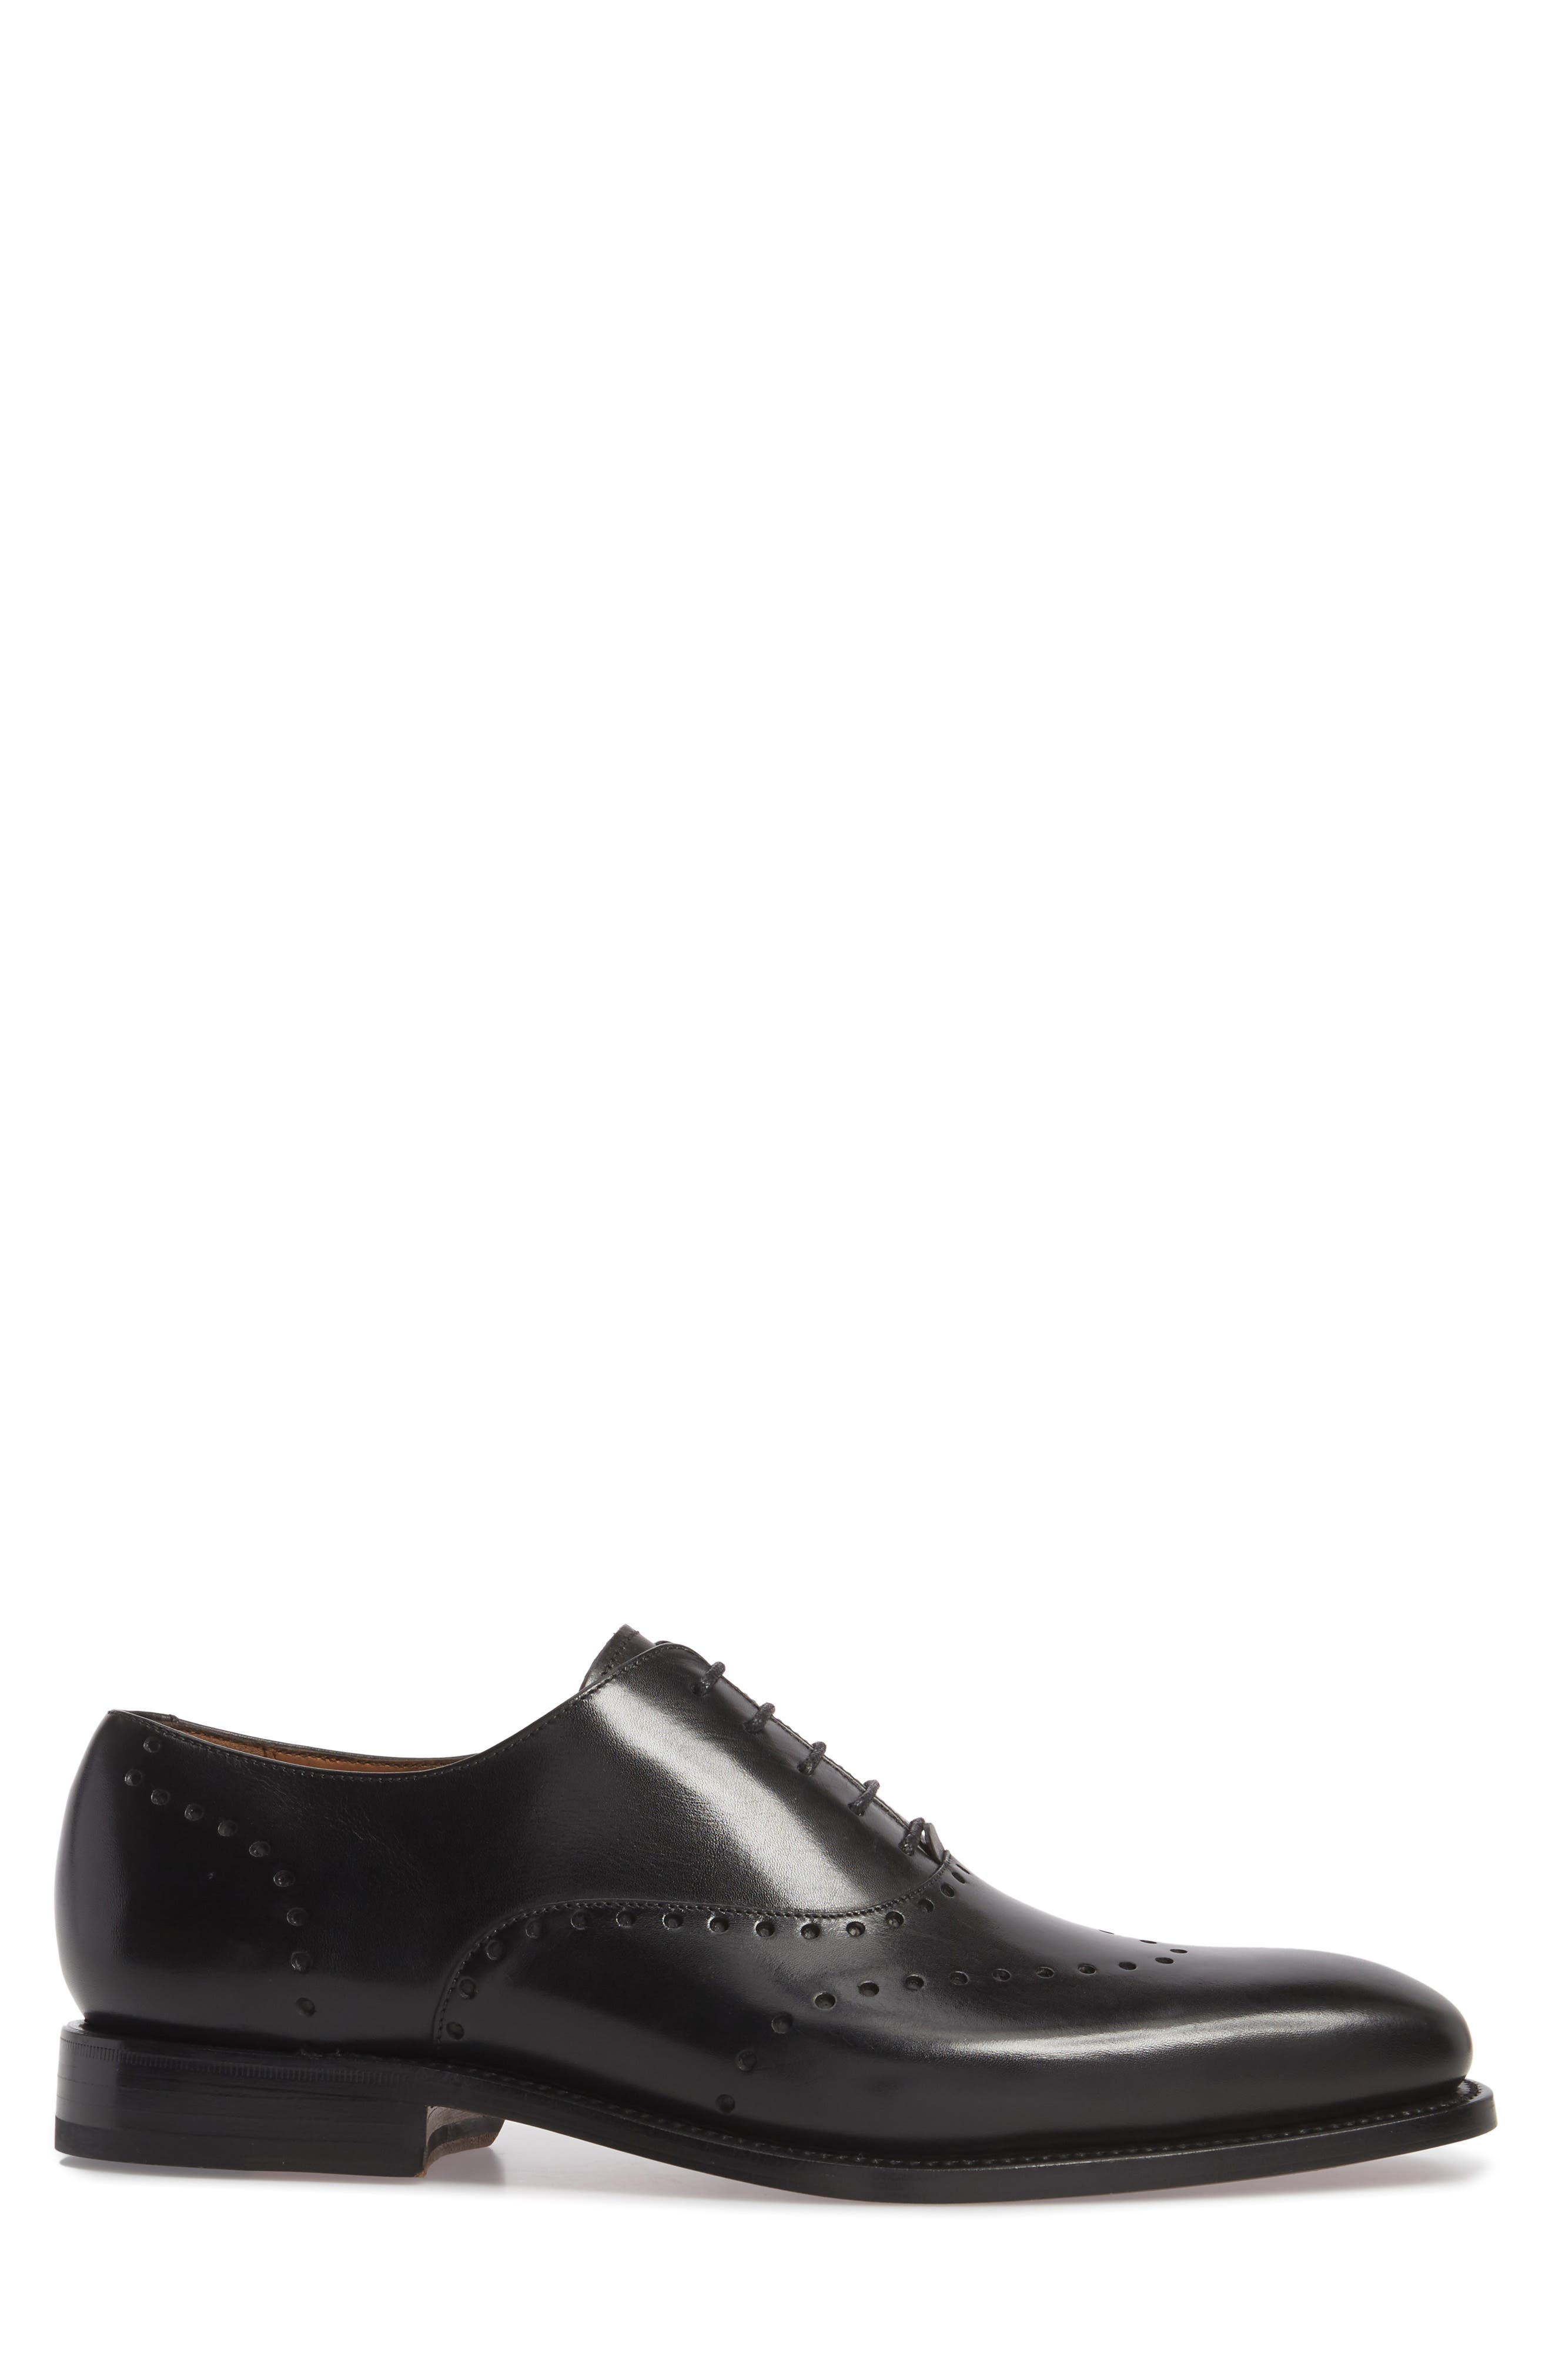 Belvedere Perforated Wingtip Oxford,                             Alternate thumbnail 3, color,                             Black